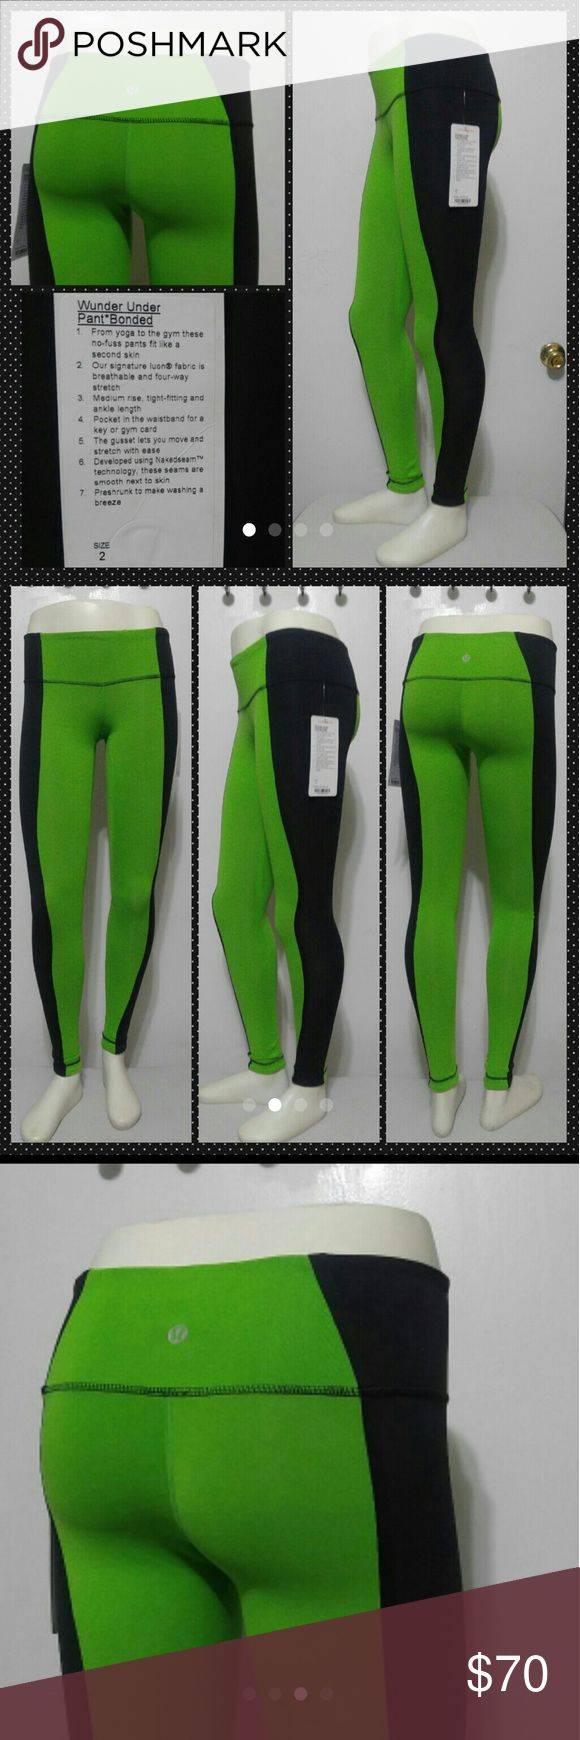 Nwt Lululemon Wunder Under Pants New w tag  Size 2  Bright green and black Lululemon Wunder Under pants bonded   Yoga to gym Luon fabric  Medium rise tight fit ankle length  Pocket in waistband  Preshrunk  Fantasic color combo  Makes a great gift  Yoga gym workout Pilates No trades lululemon athletica Pants Leggings